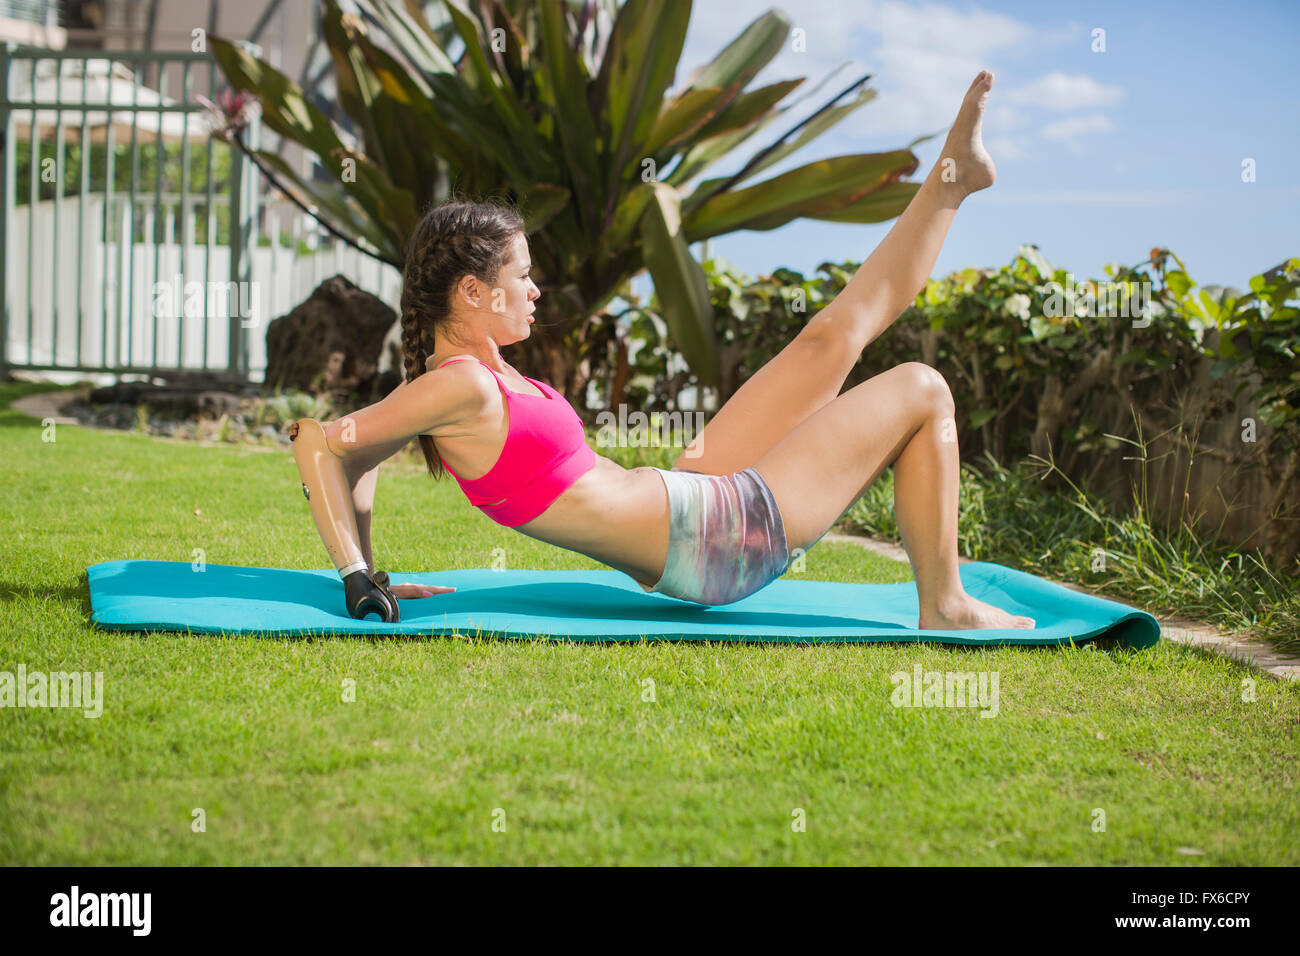 Mixed race amputee working out in grass Stock Photo